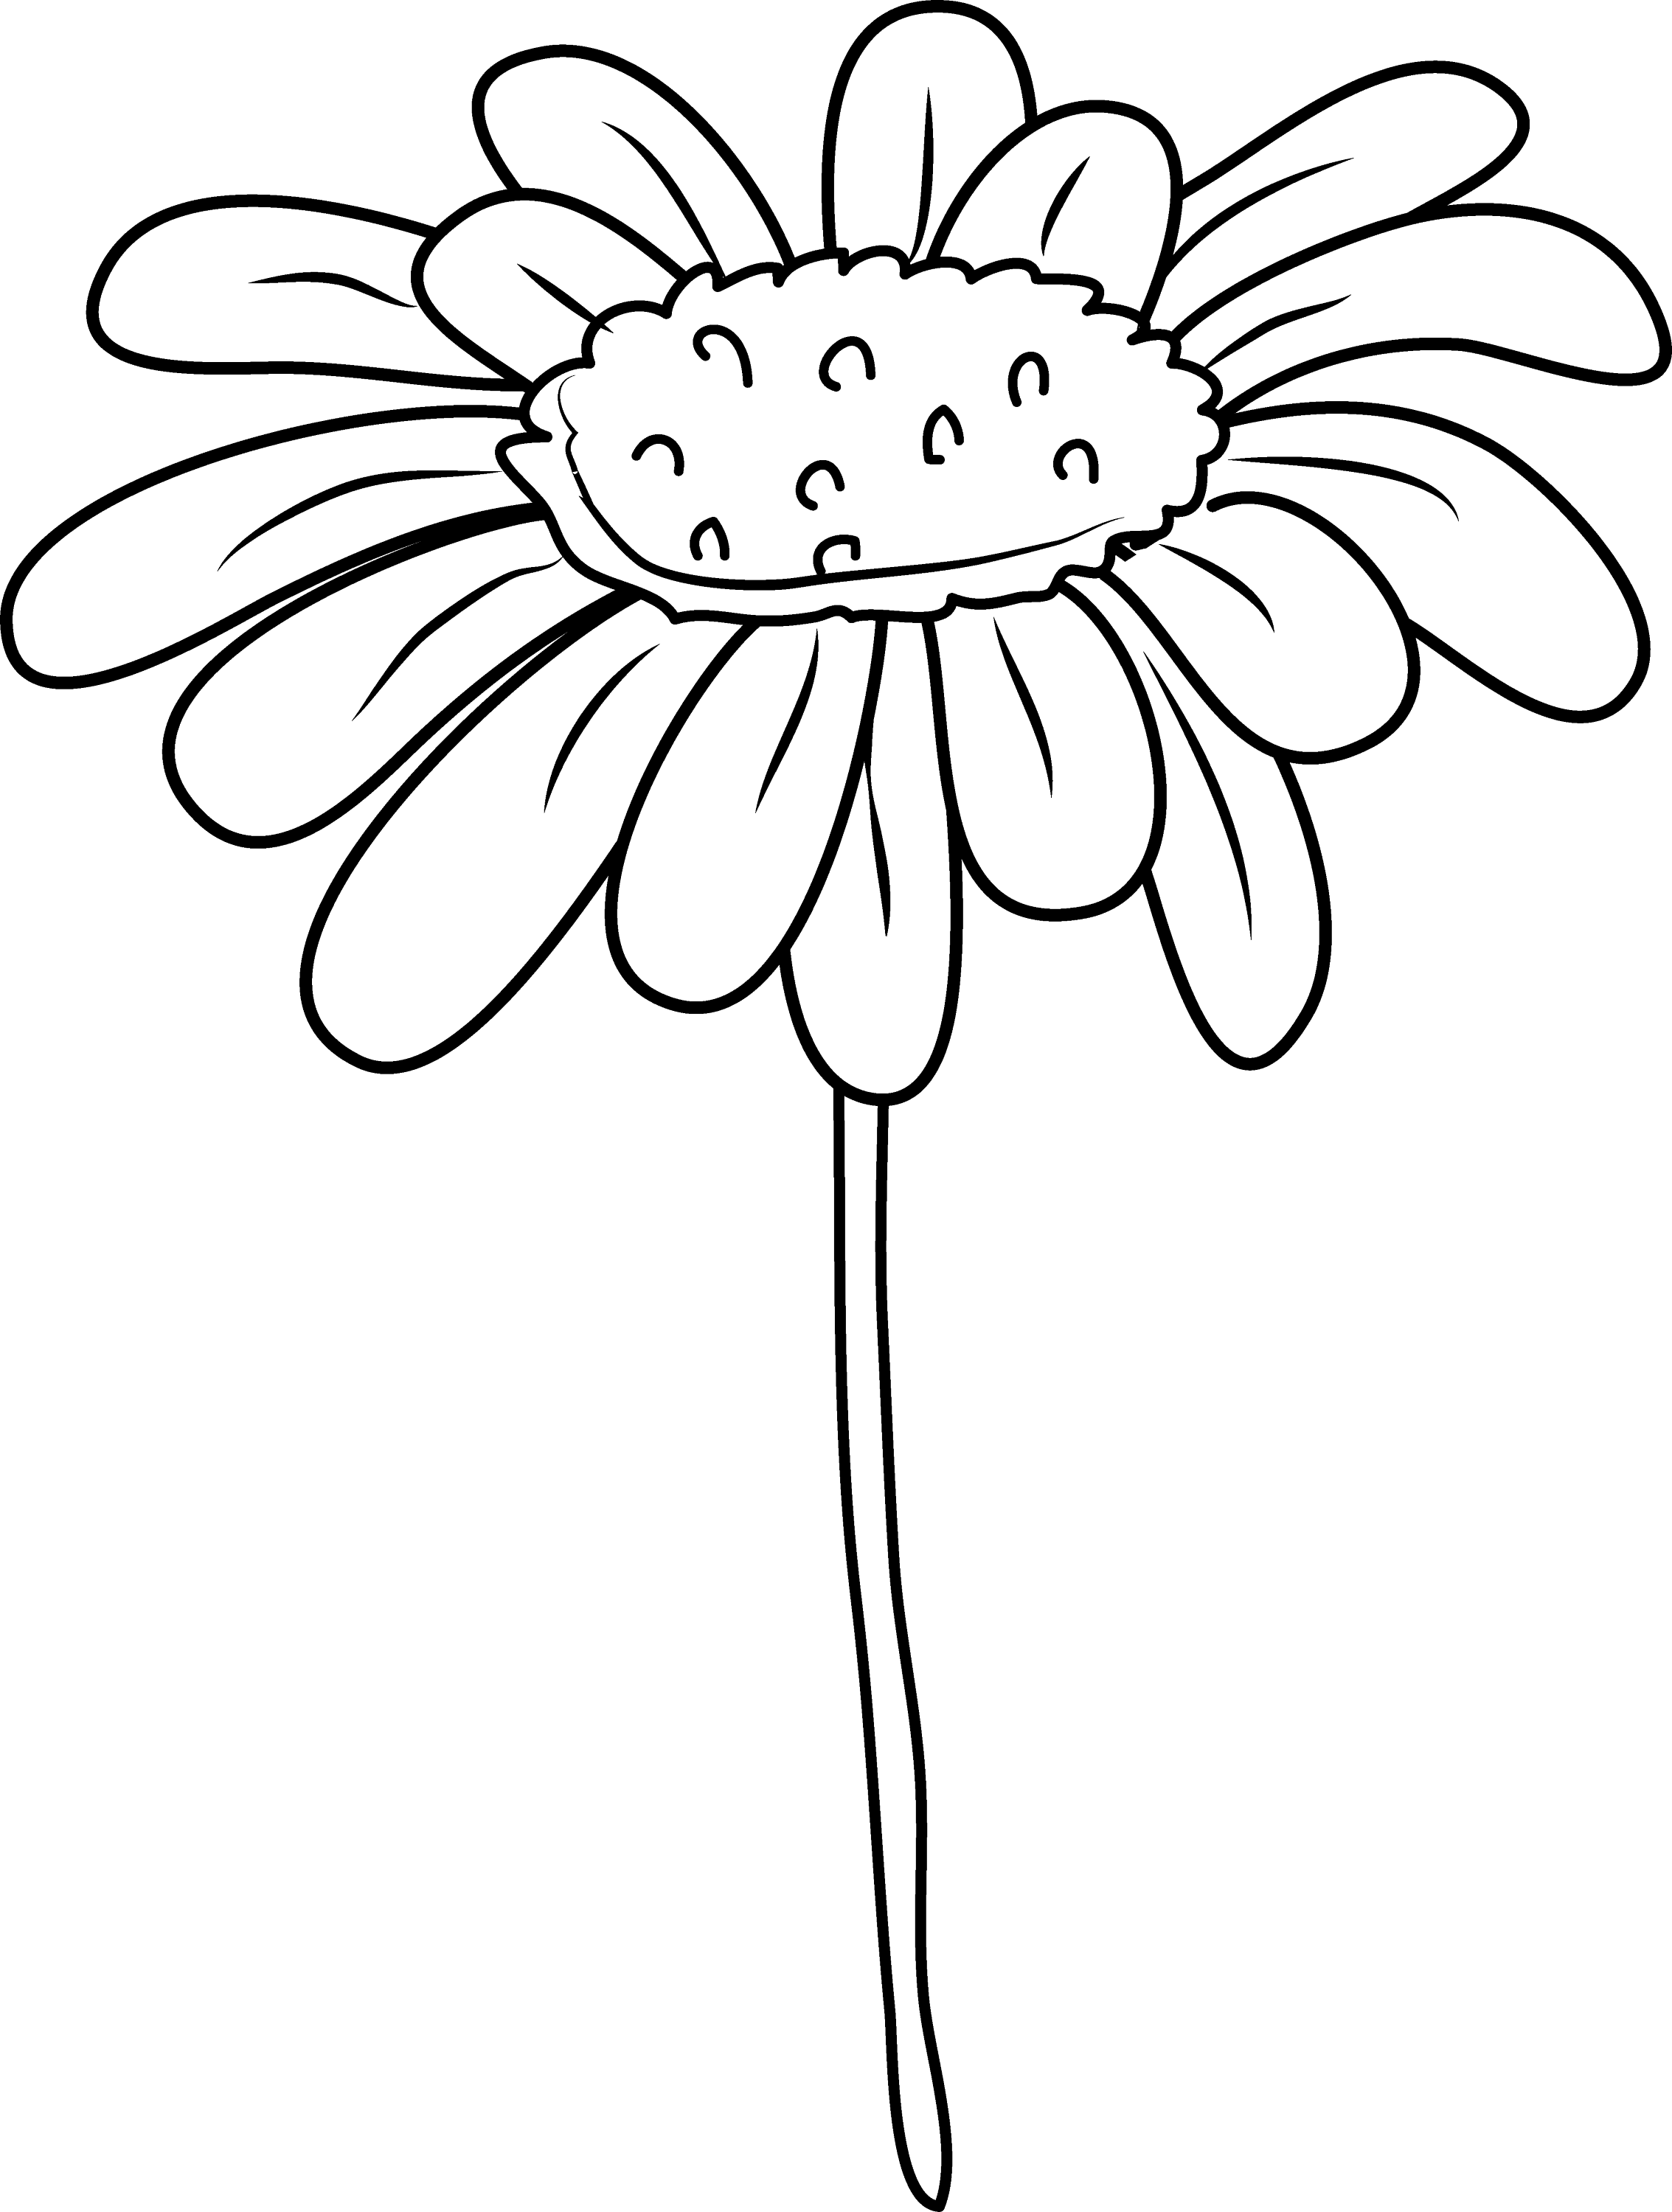 Daisy scout petal coloring pages - Daisy Flower Coloring Page